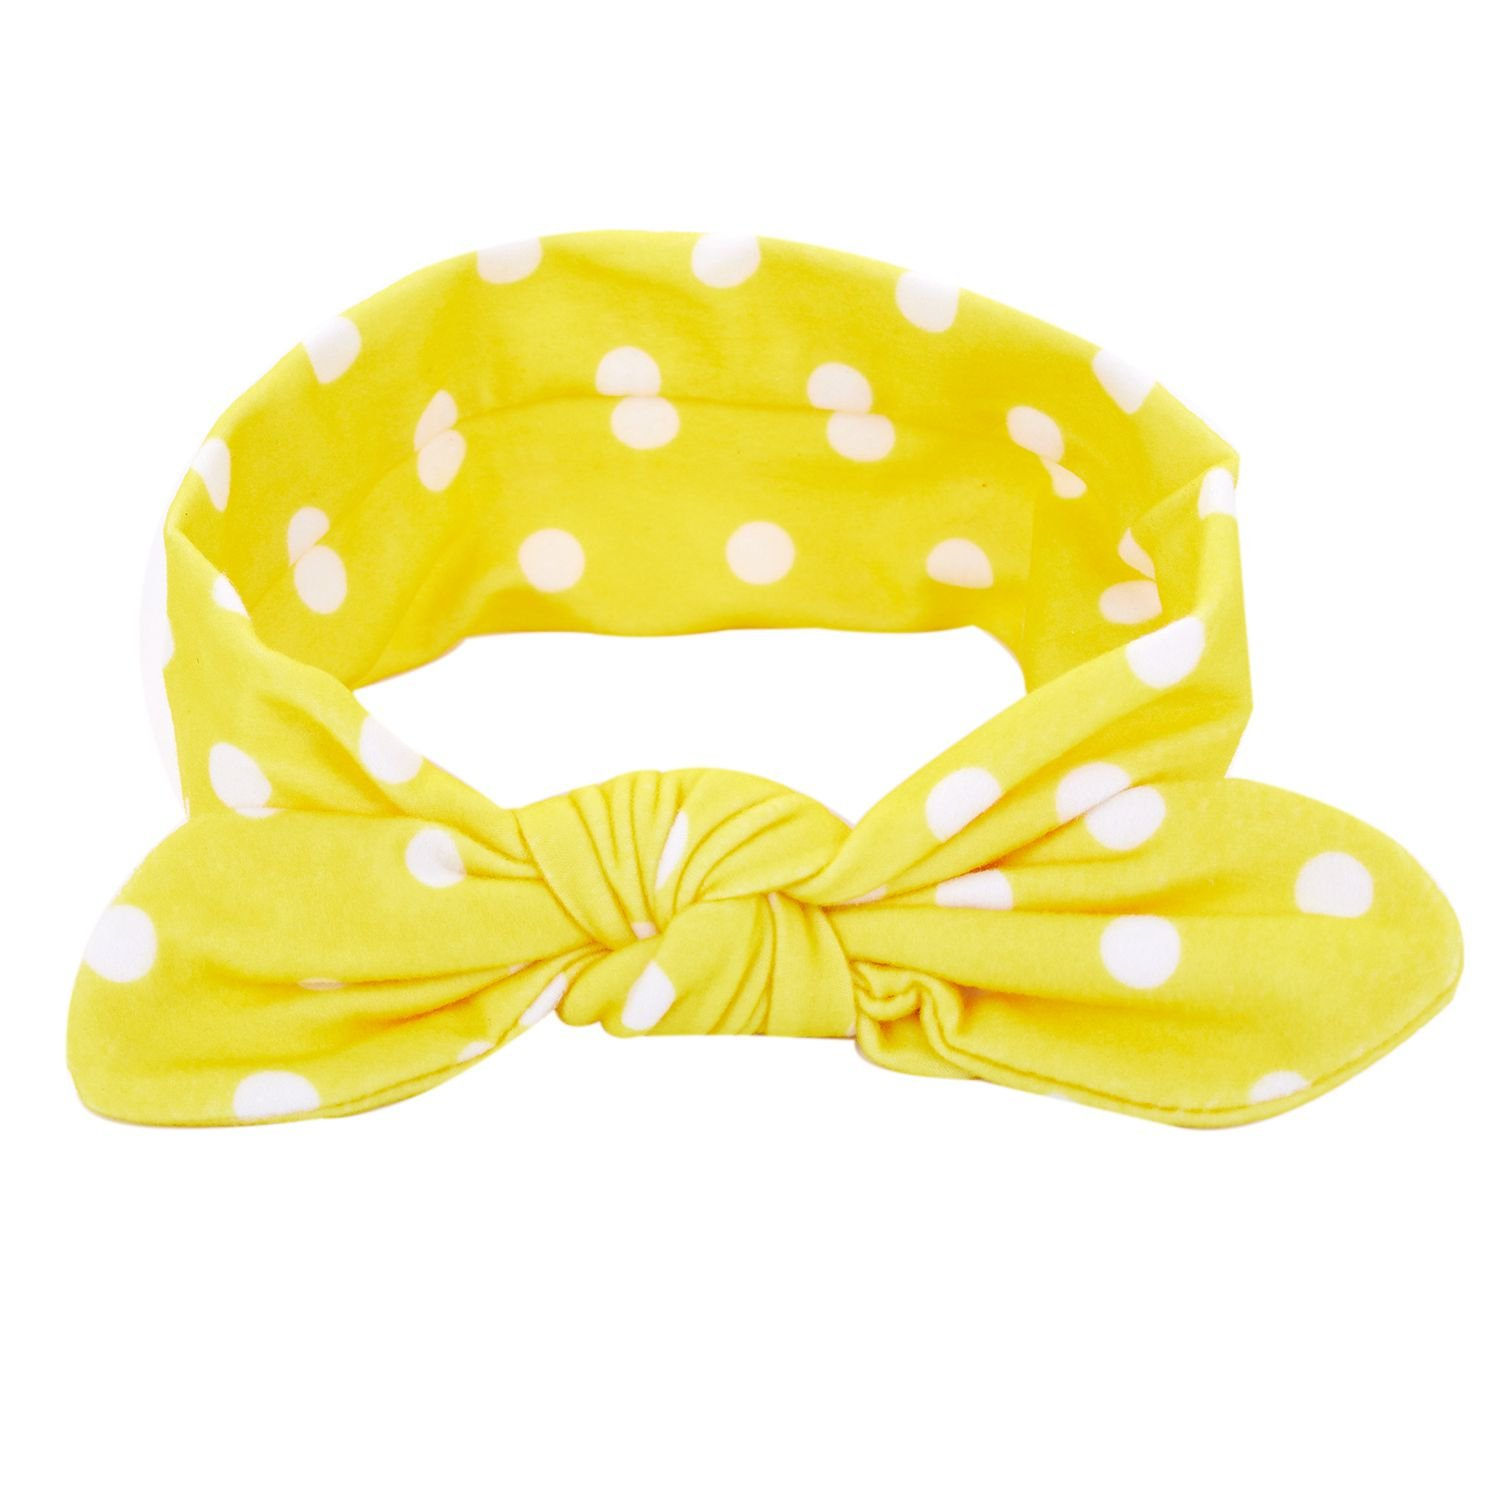 SODIAL Hairband,Baby Ears Rabbit Polka Dot Elastic Bow Turban Knitted HeadBand (Yellow)